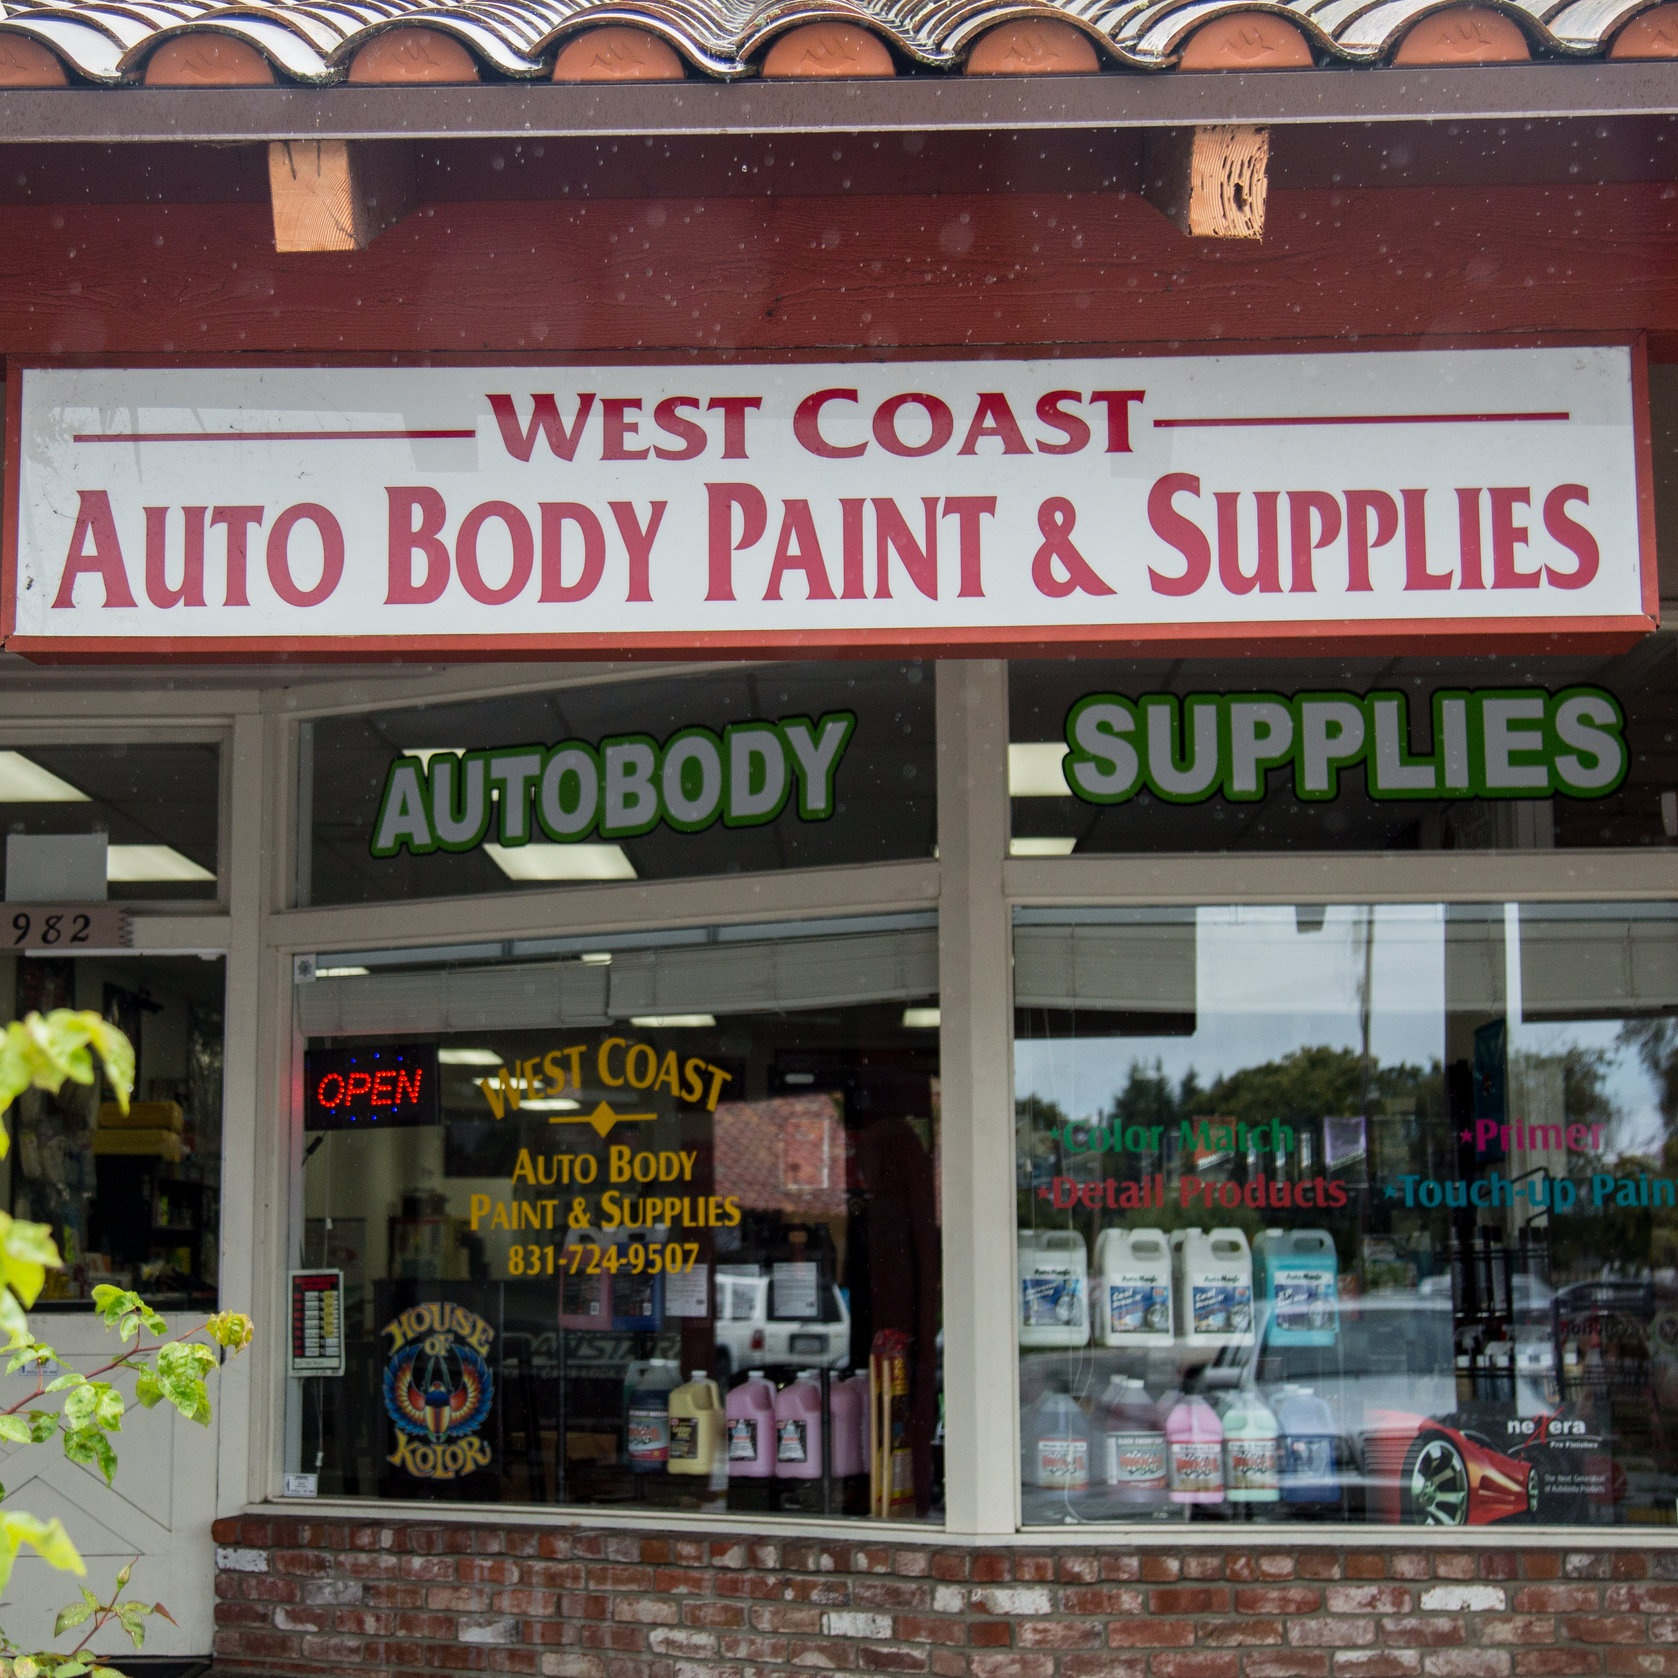 West Coast Autobody & Supply   952 East Lake Ave. Watsonville, CA 95076  (831)724-9507   Follow on:  Facebook  Visit website  HERE